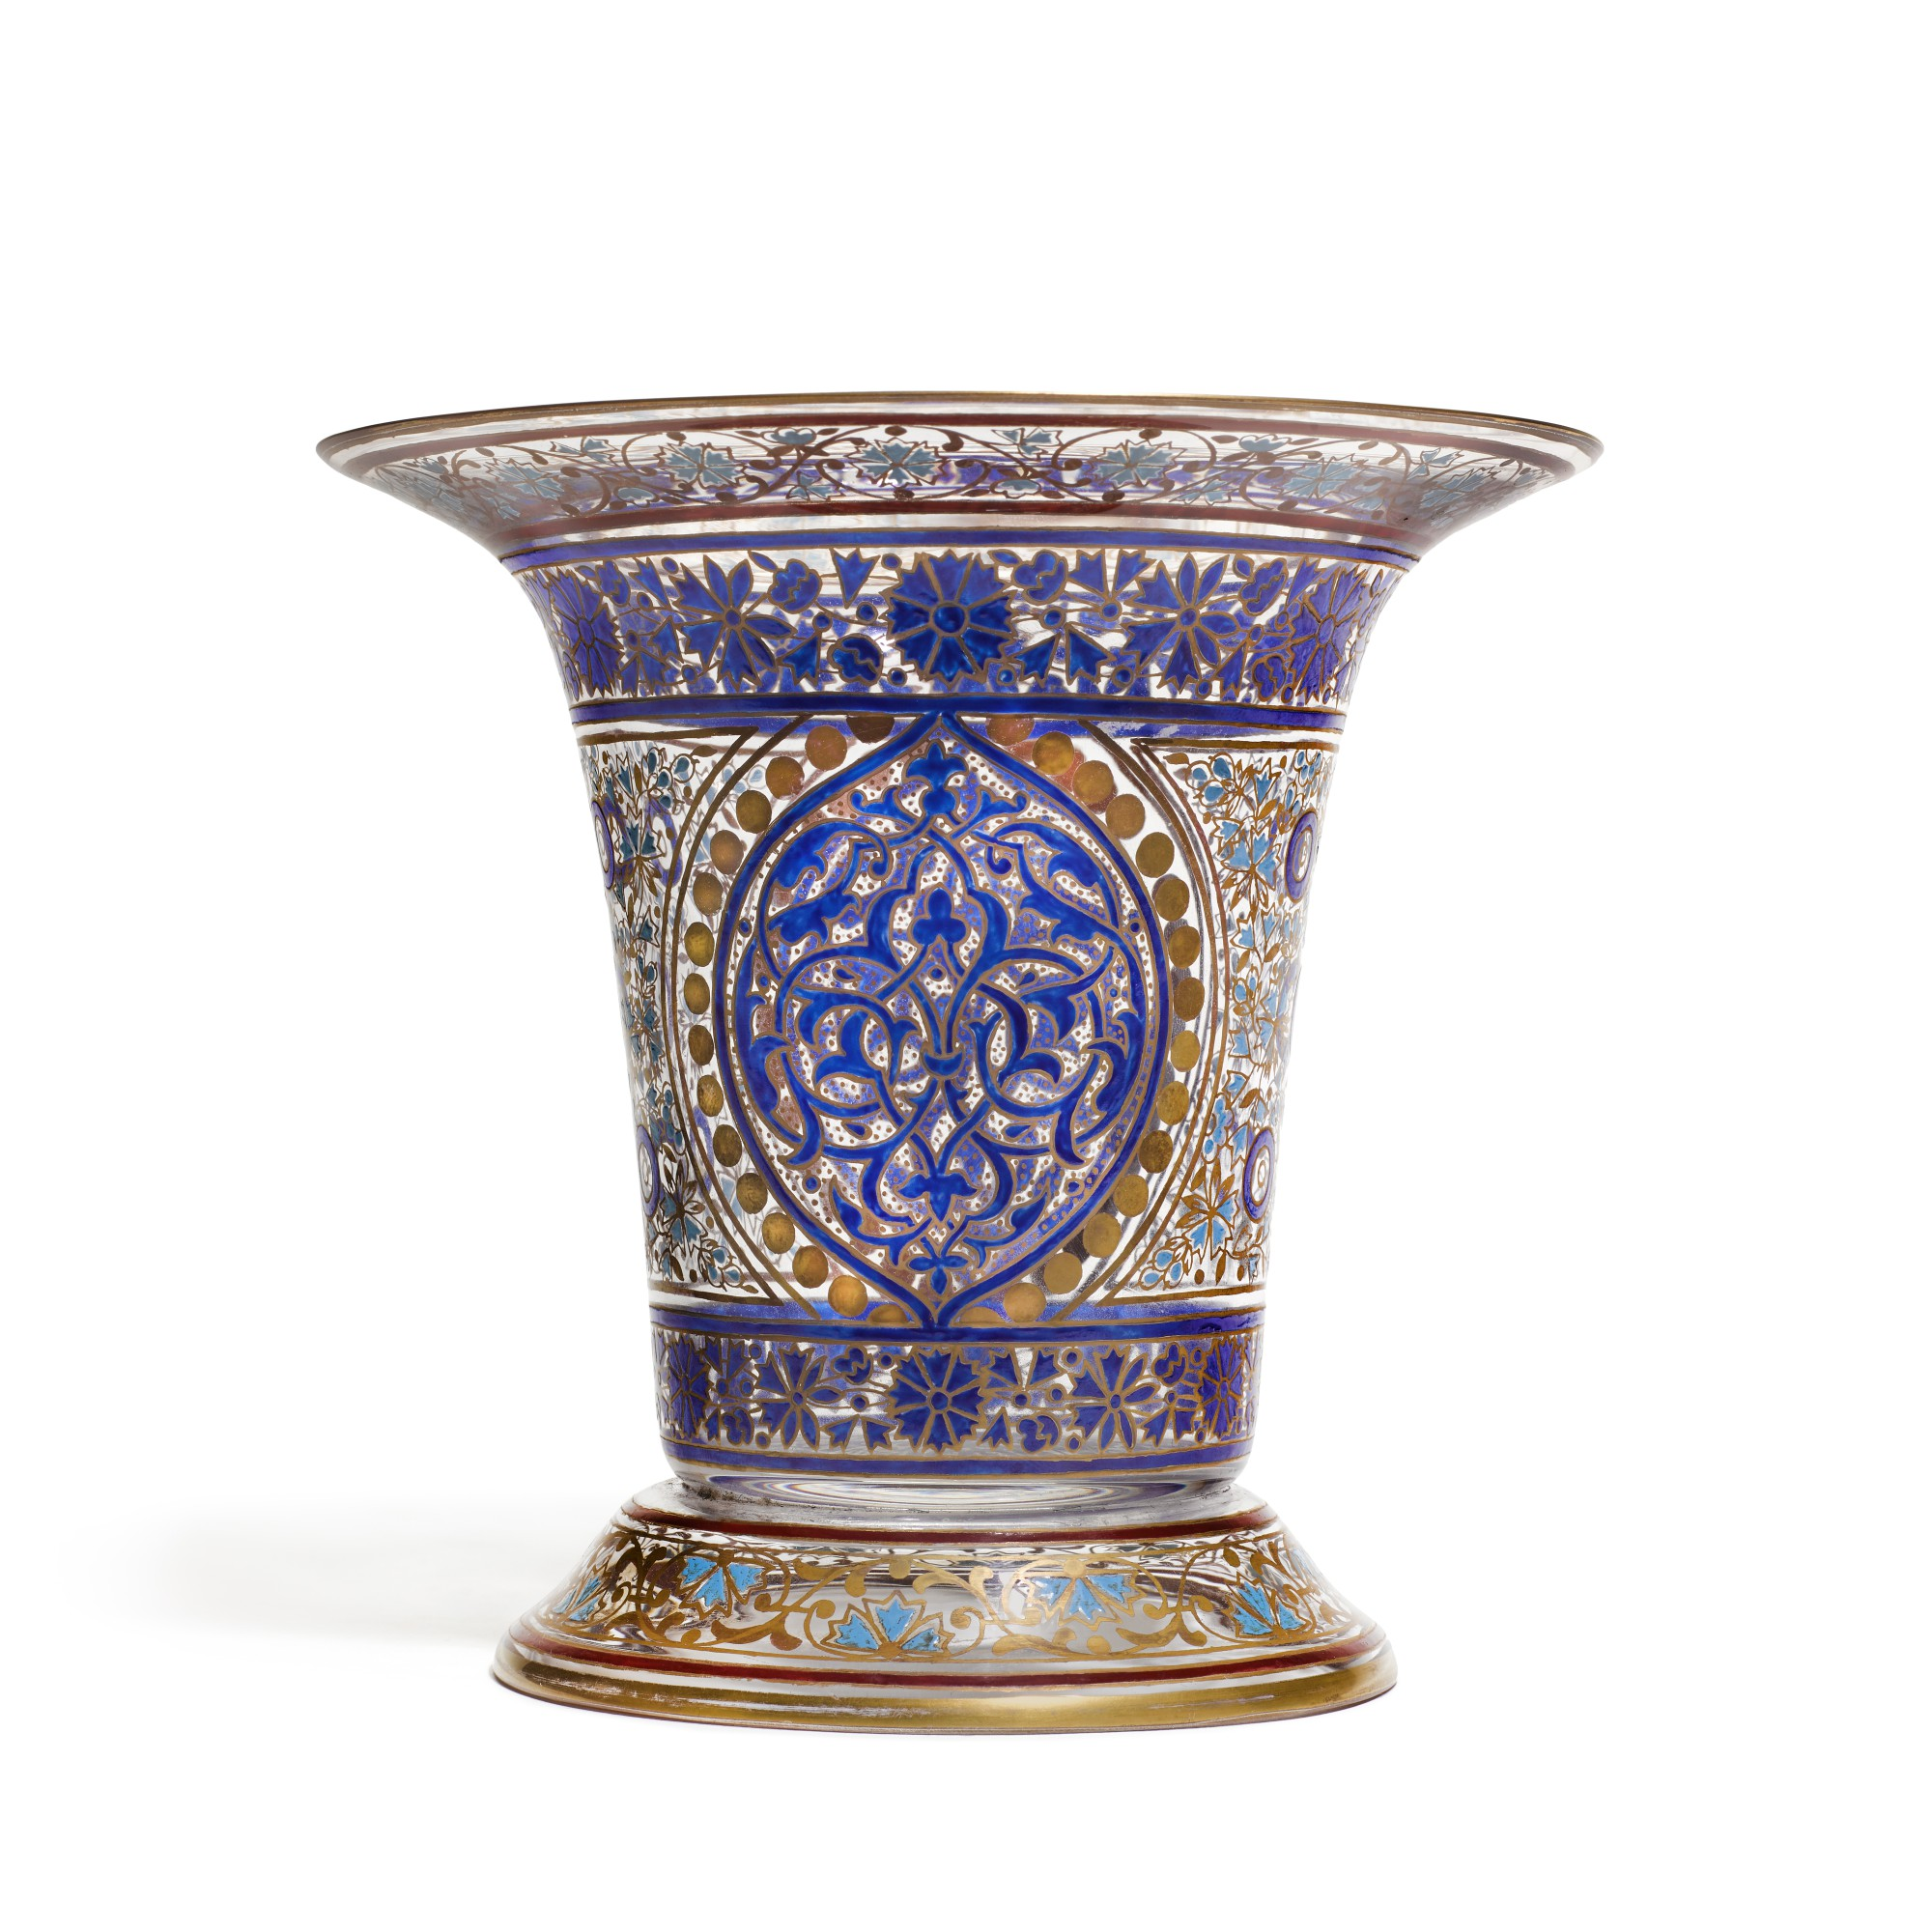 A J L Lobmeyr Enamelled Glass Flared Vase In The Islamic Taste Circa 1878 Style Furniture Silver Clocks Ceramics And Vertu2020 Sotheby S